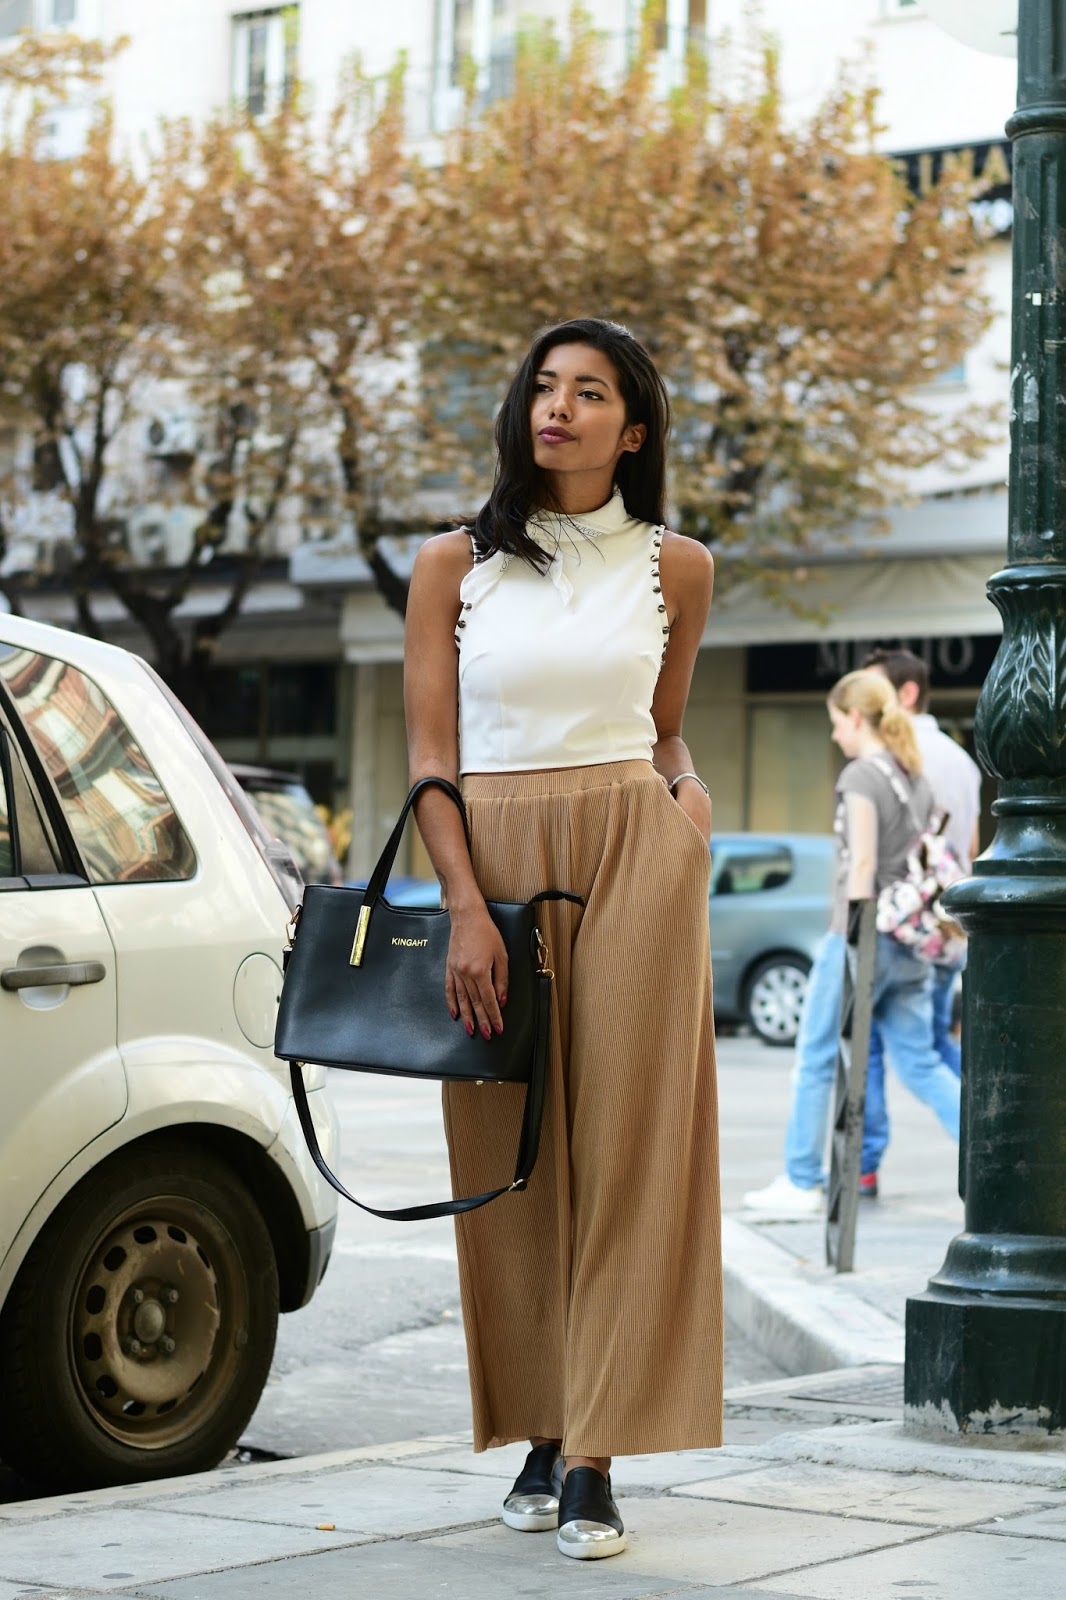 Pleated Culotte Pants outfit inspiration for transitioning into Fall